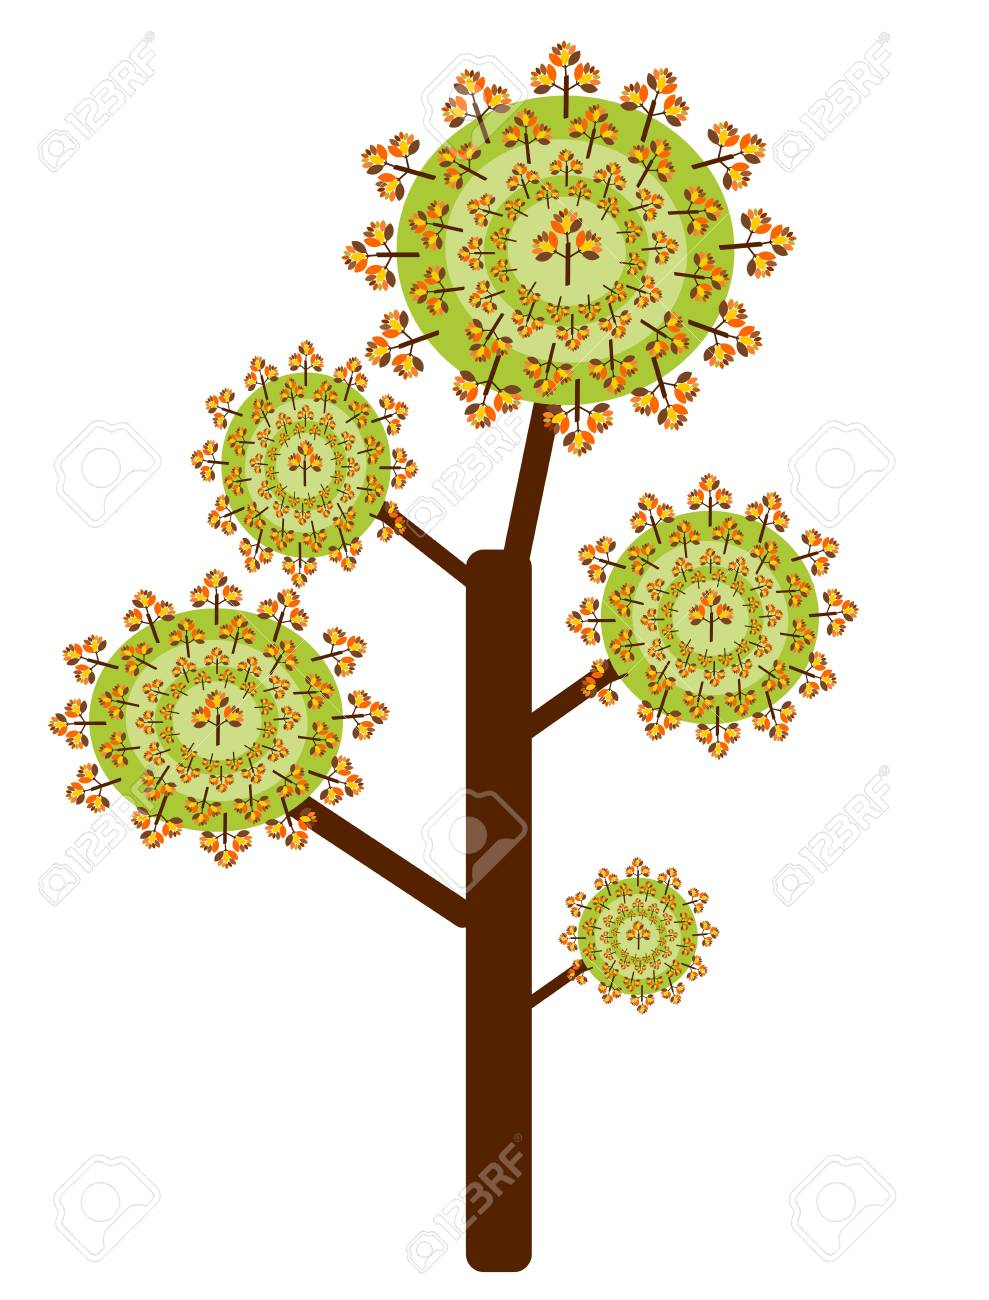 Funny abstract tree with autumn colorful leaves Stock Vector - 15027422